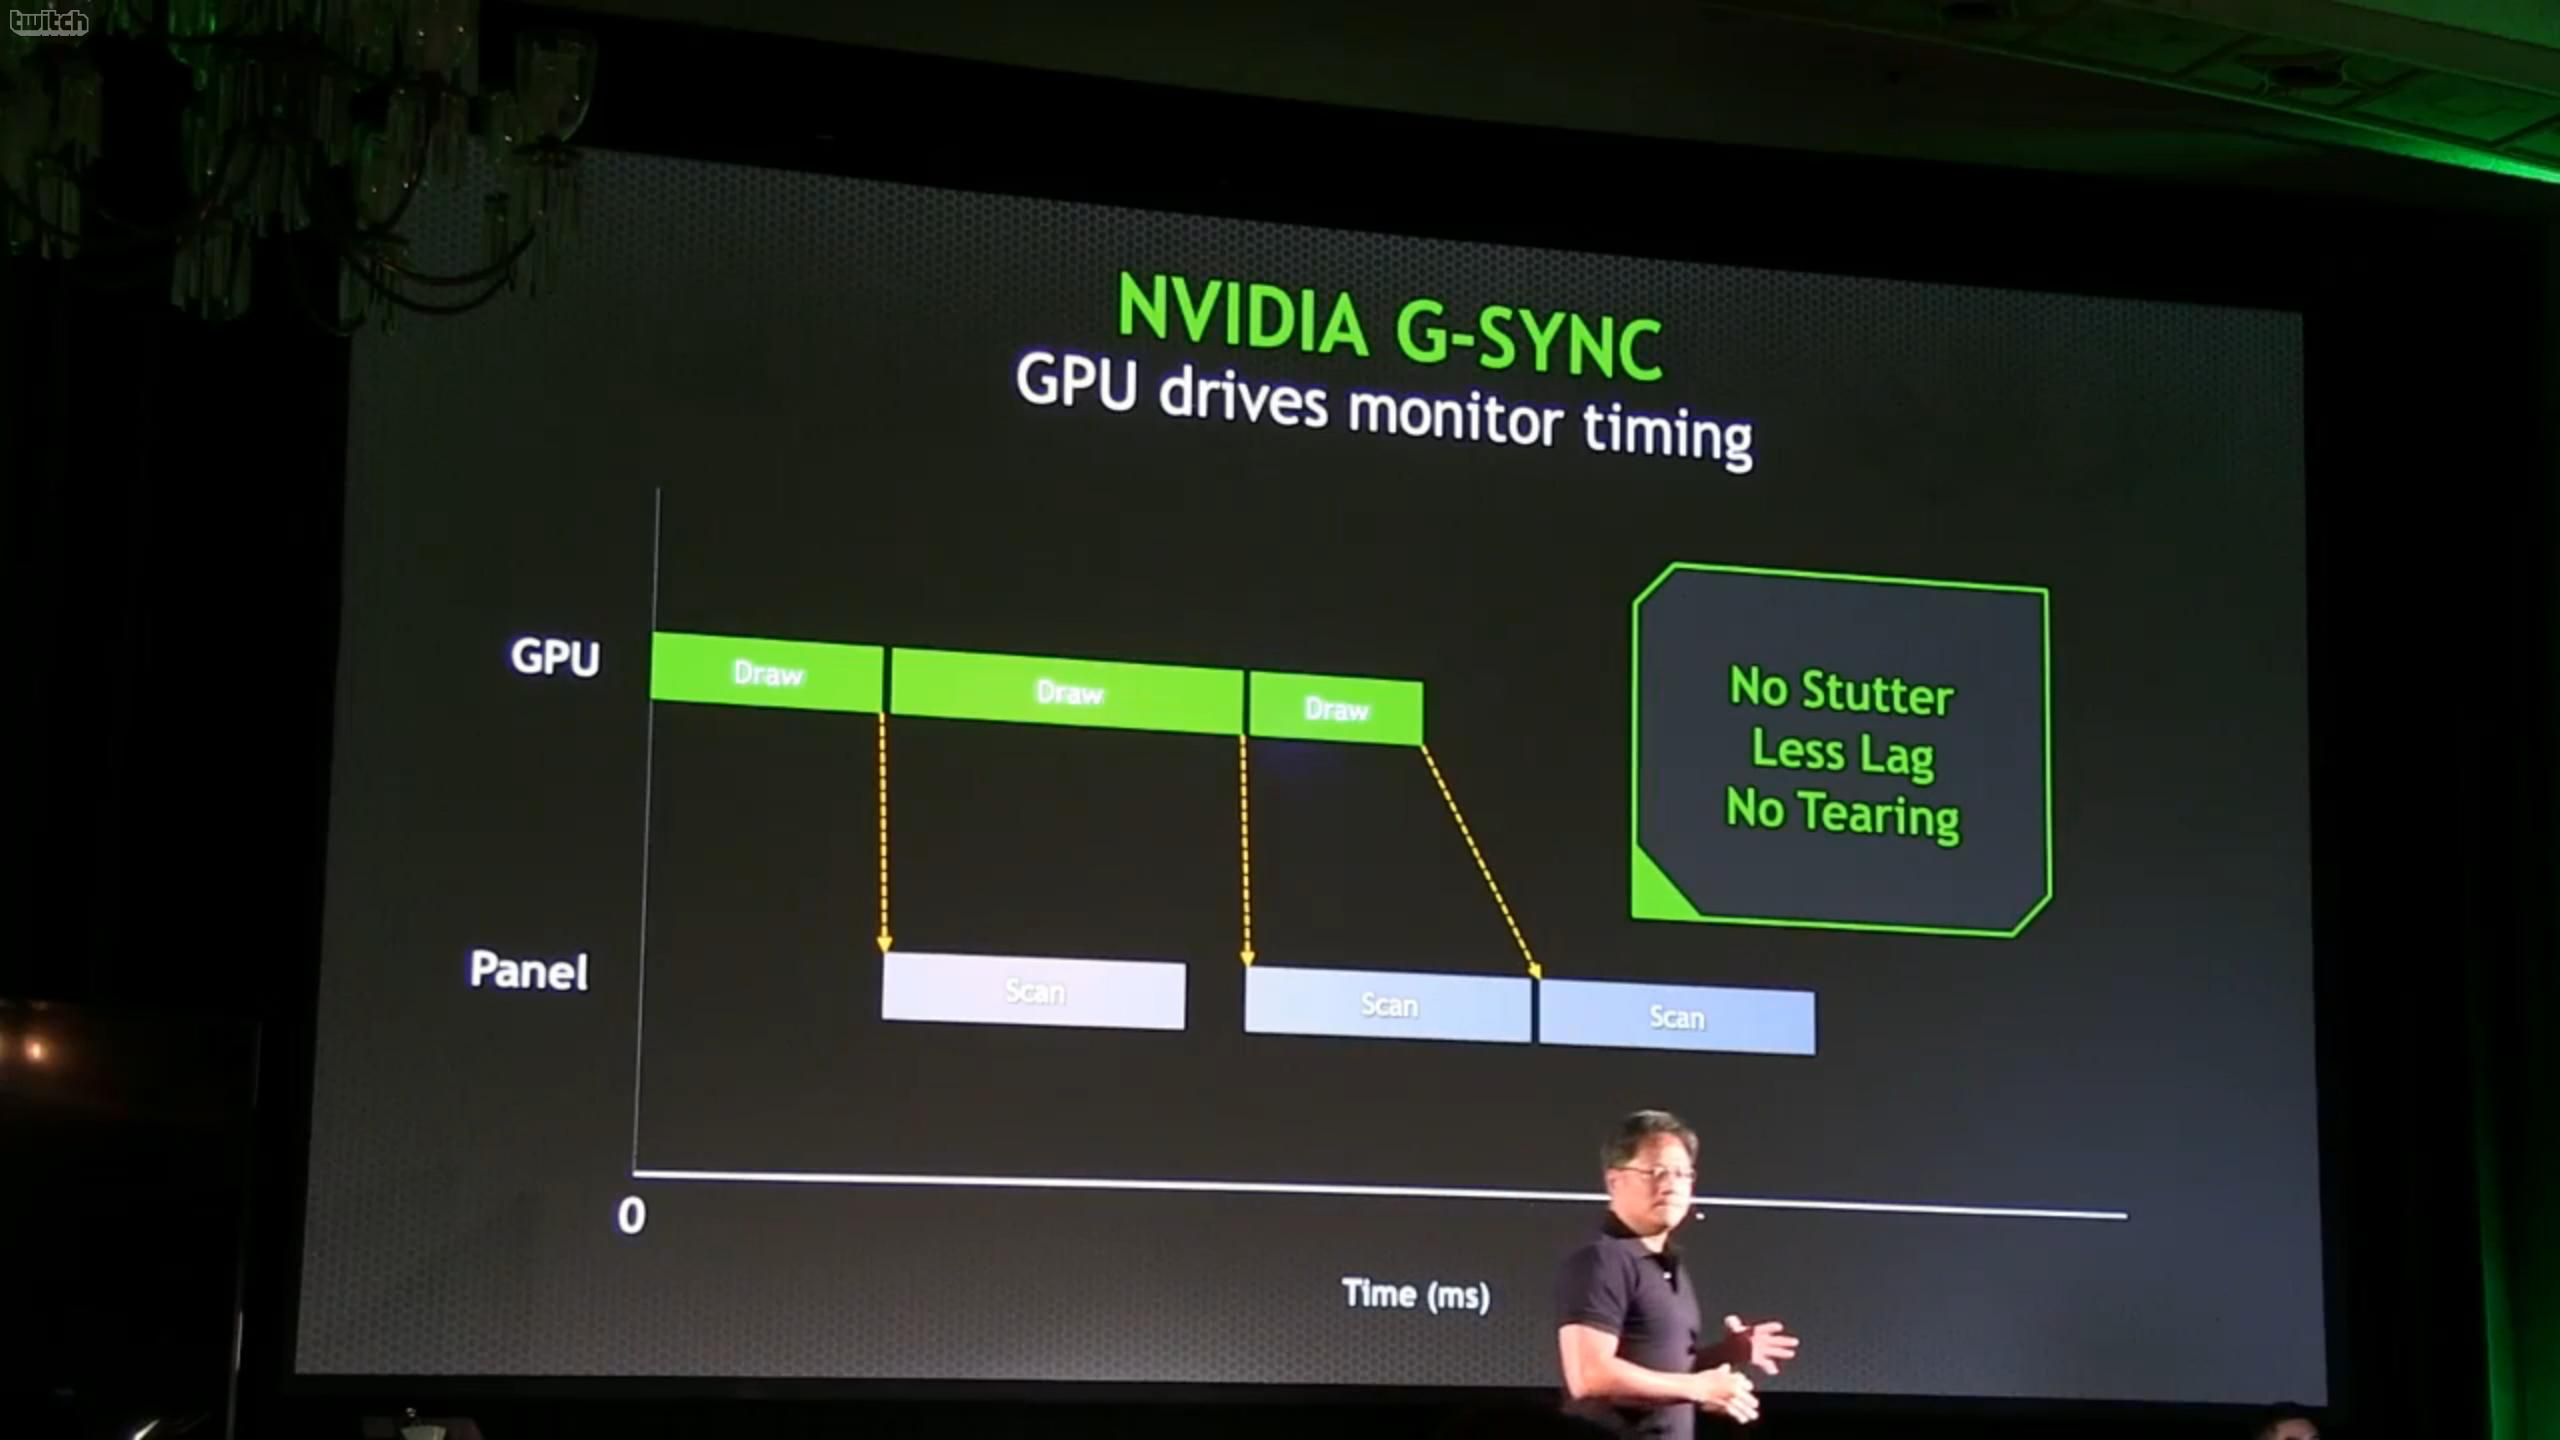 nvidia g-sync technology unveiled